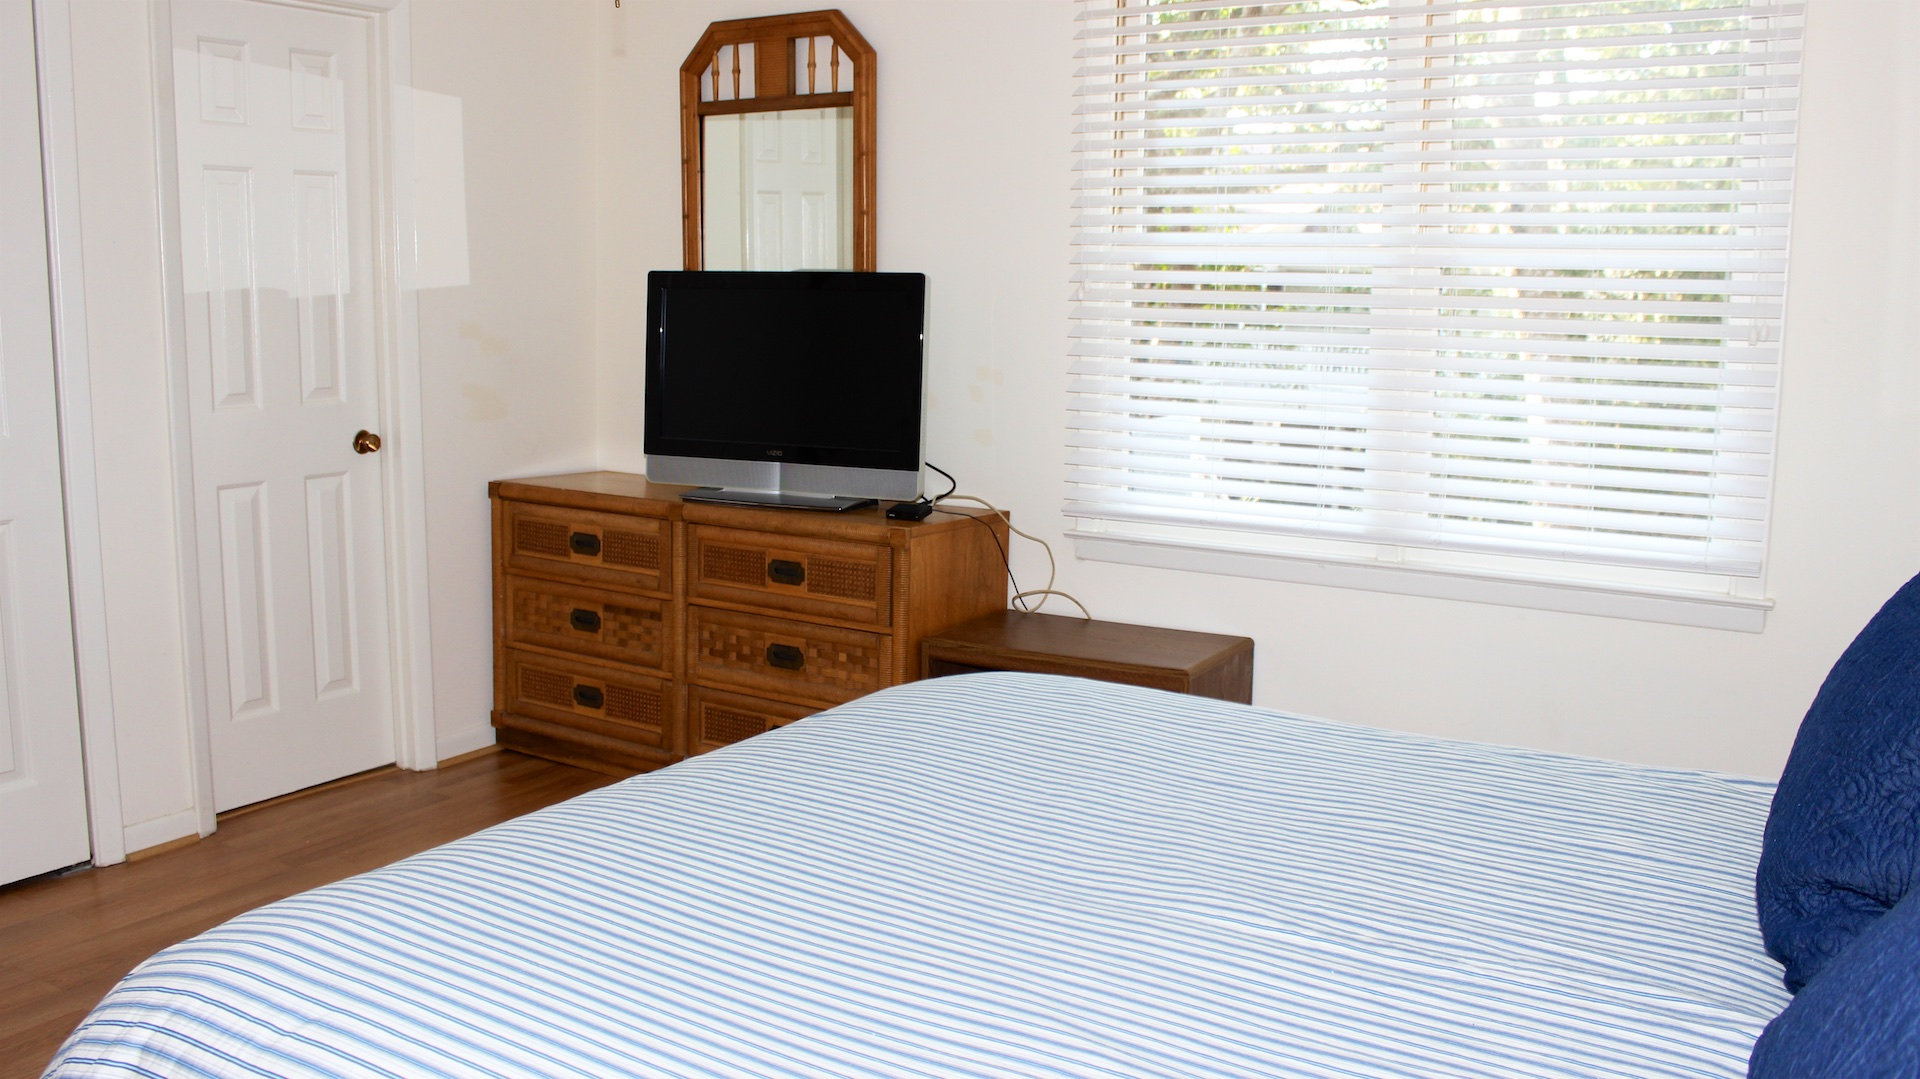 There is a double closet and dresser for your clothing and a flatscreen TV.